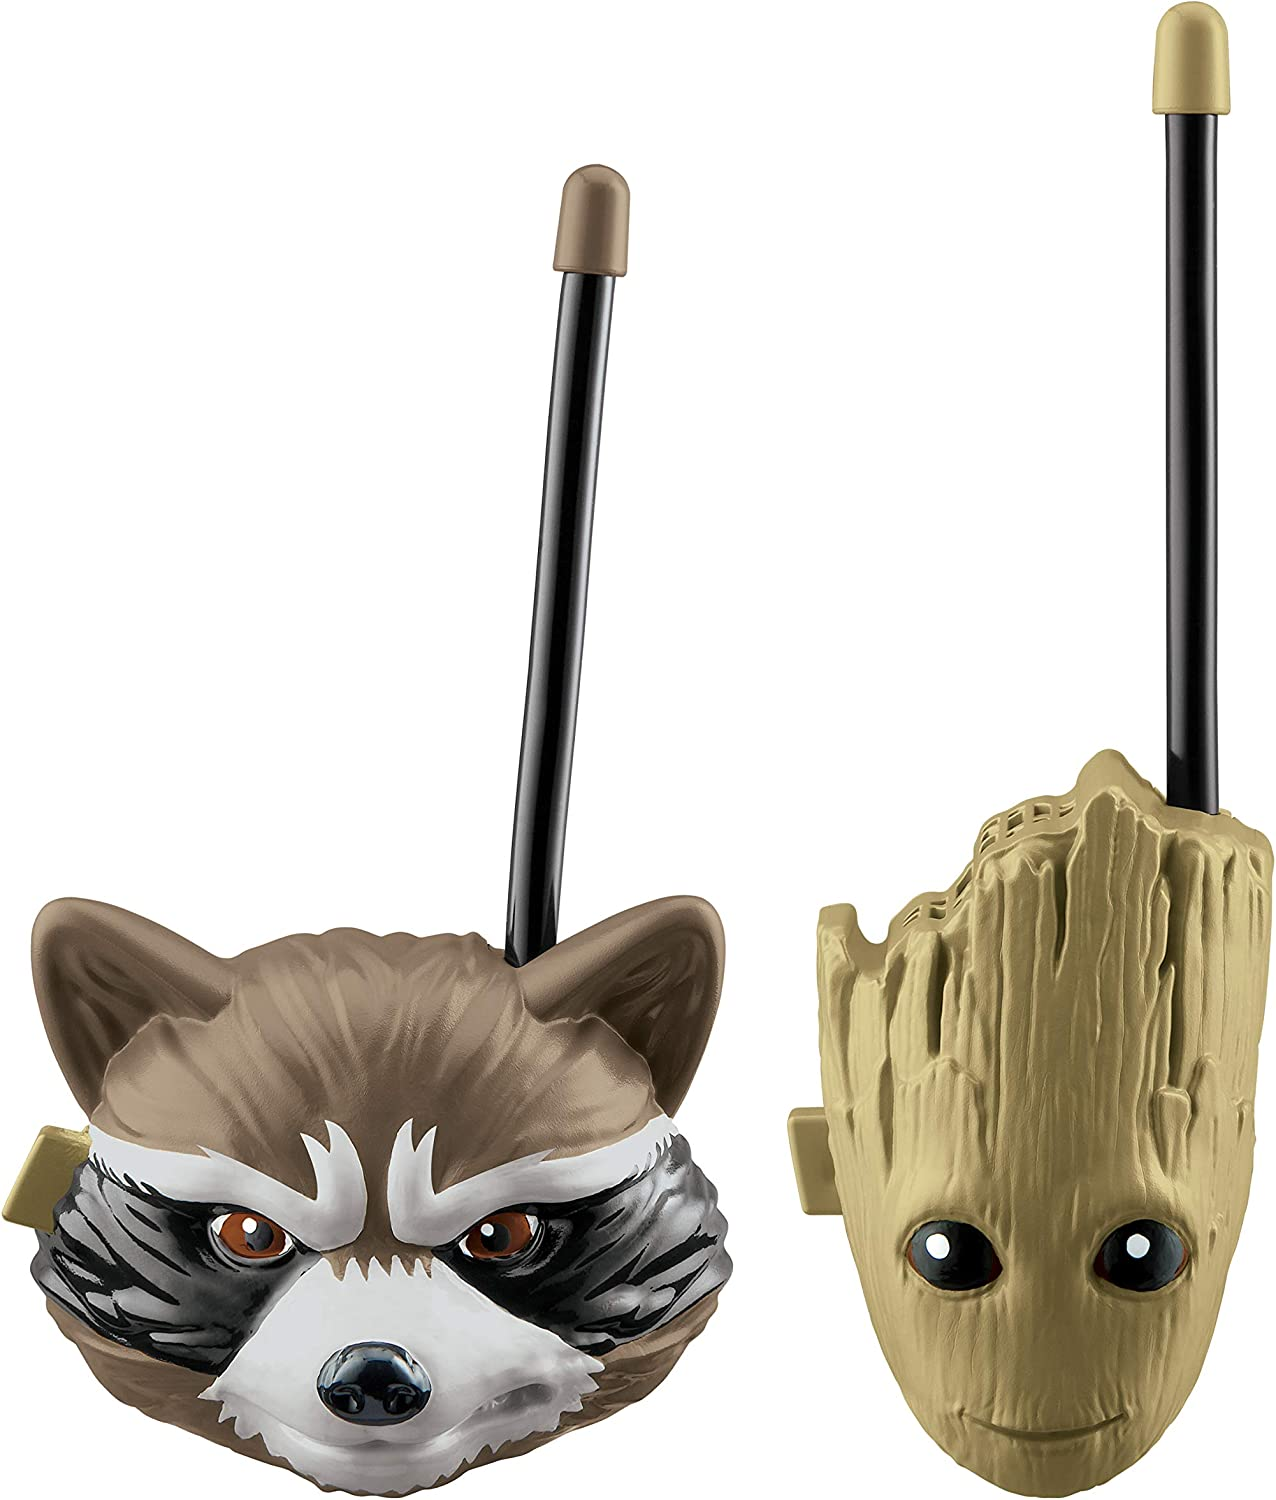 Guardians of The Galaxy Groot and Rocket Racoon Walkie Talkies for Kids Static Free Extended Range Kid Friendly Easy to Use 2 Way Walkie Talkies